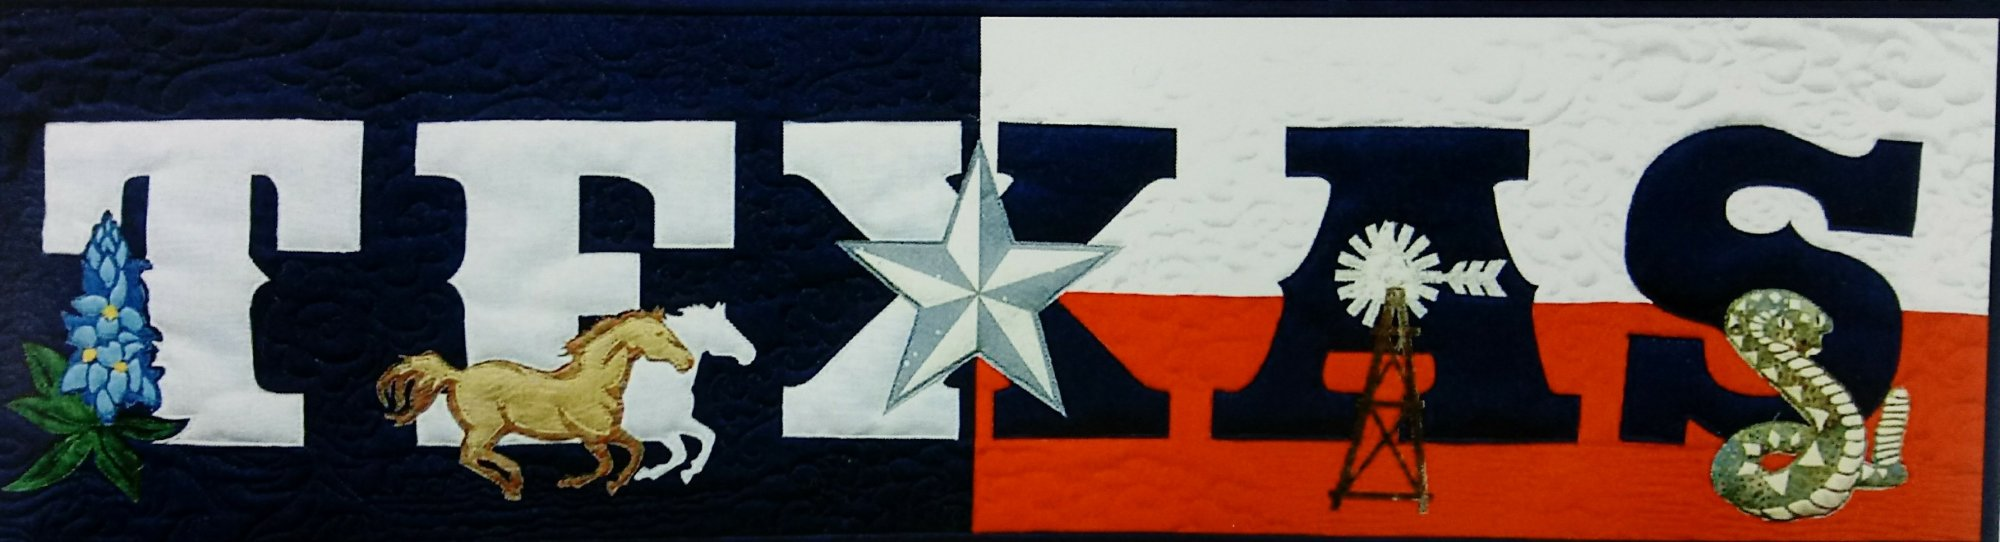 Texas Banner from the State Pride Collection by Westfield Laser Design